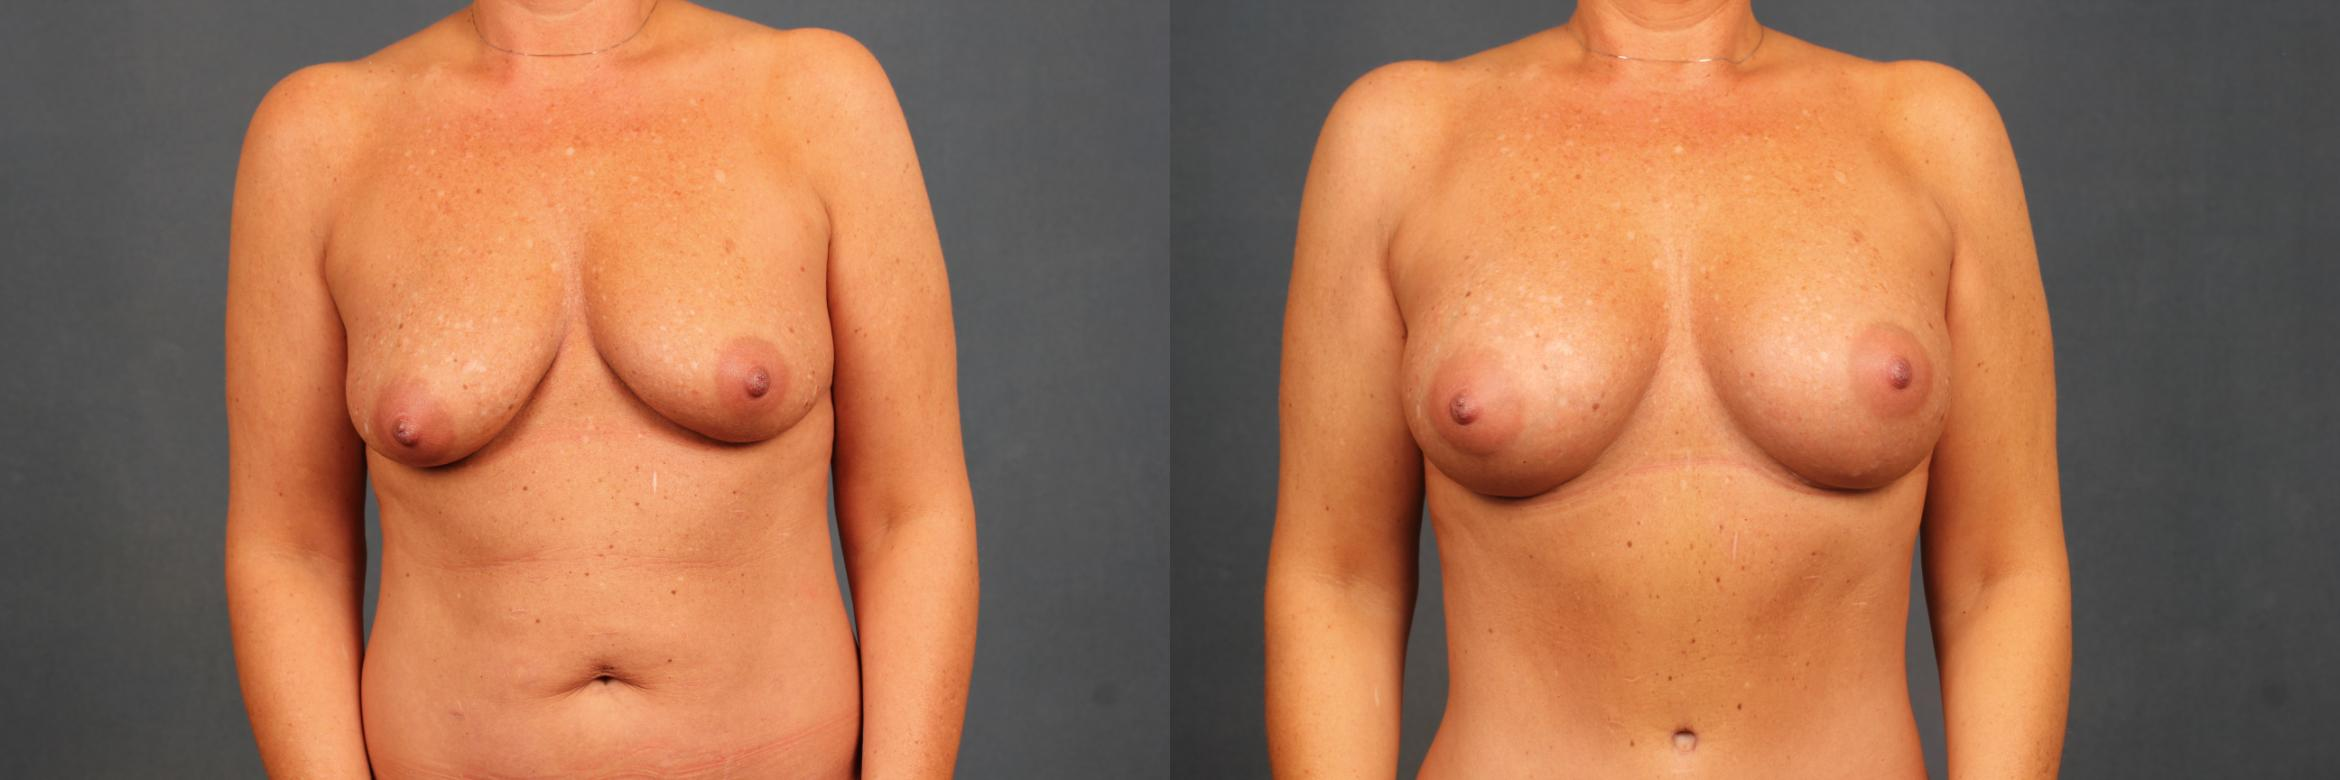 Enlargement - Silicone Case 383 Before & After View #1 | Louisville, KY | CaloAesthetics® Plastic Surgery Center